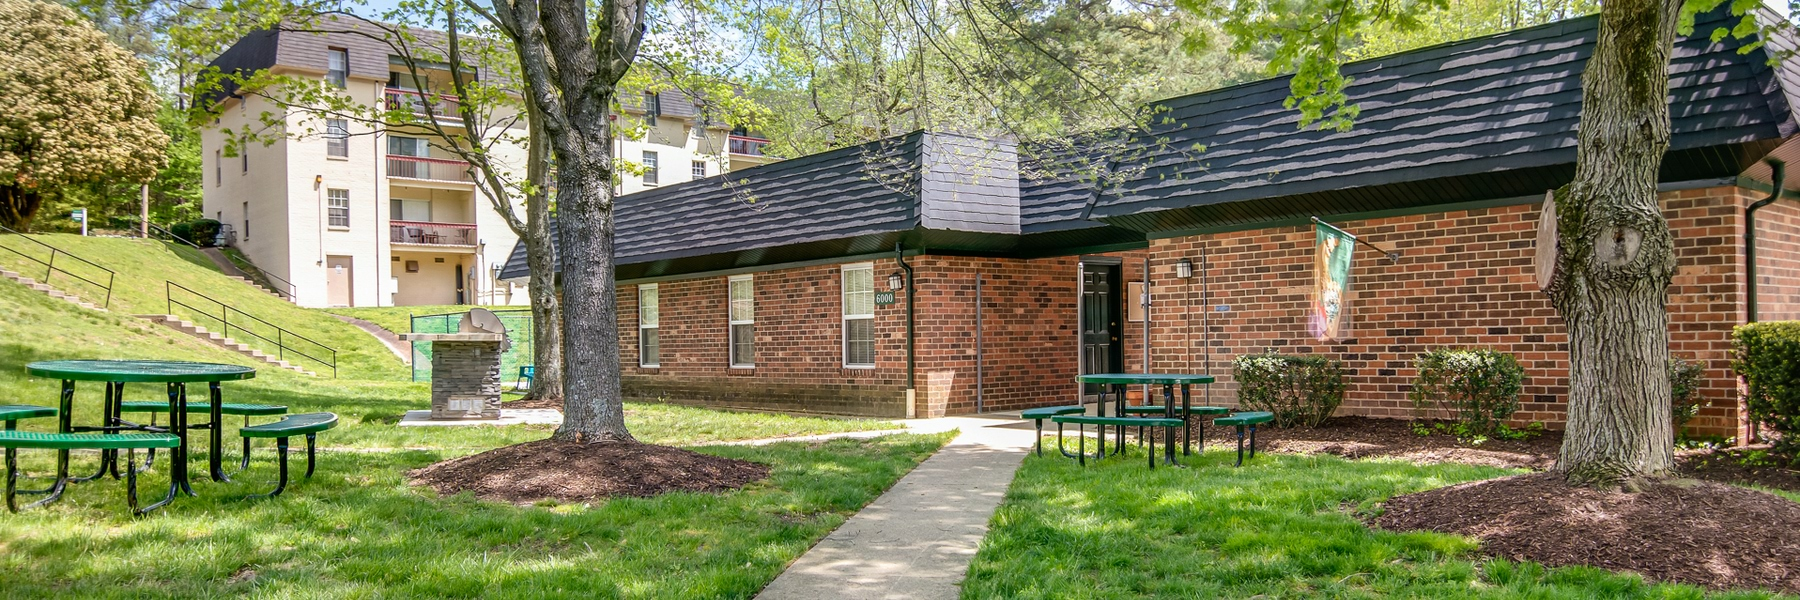 Willow Oaks Apartments; Willow Oaks Apartments Picnic Station ...